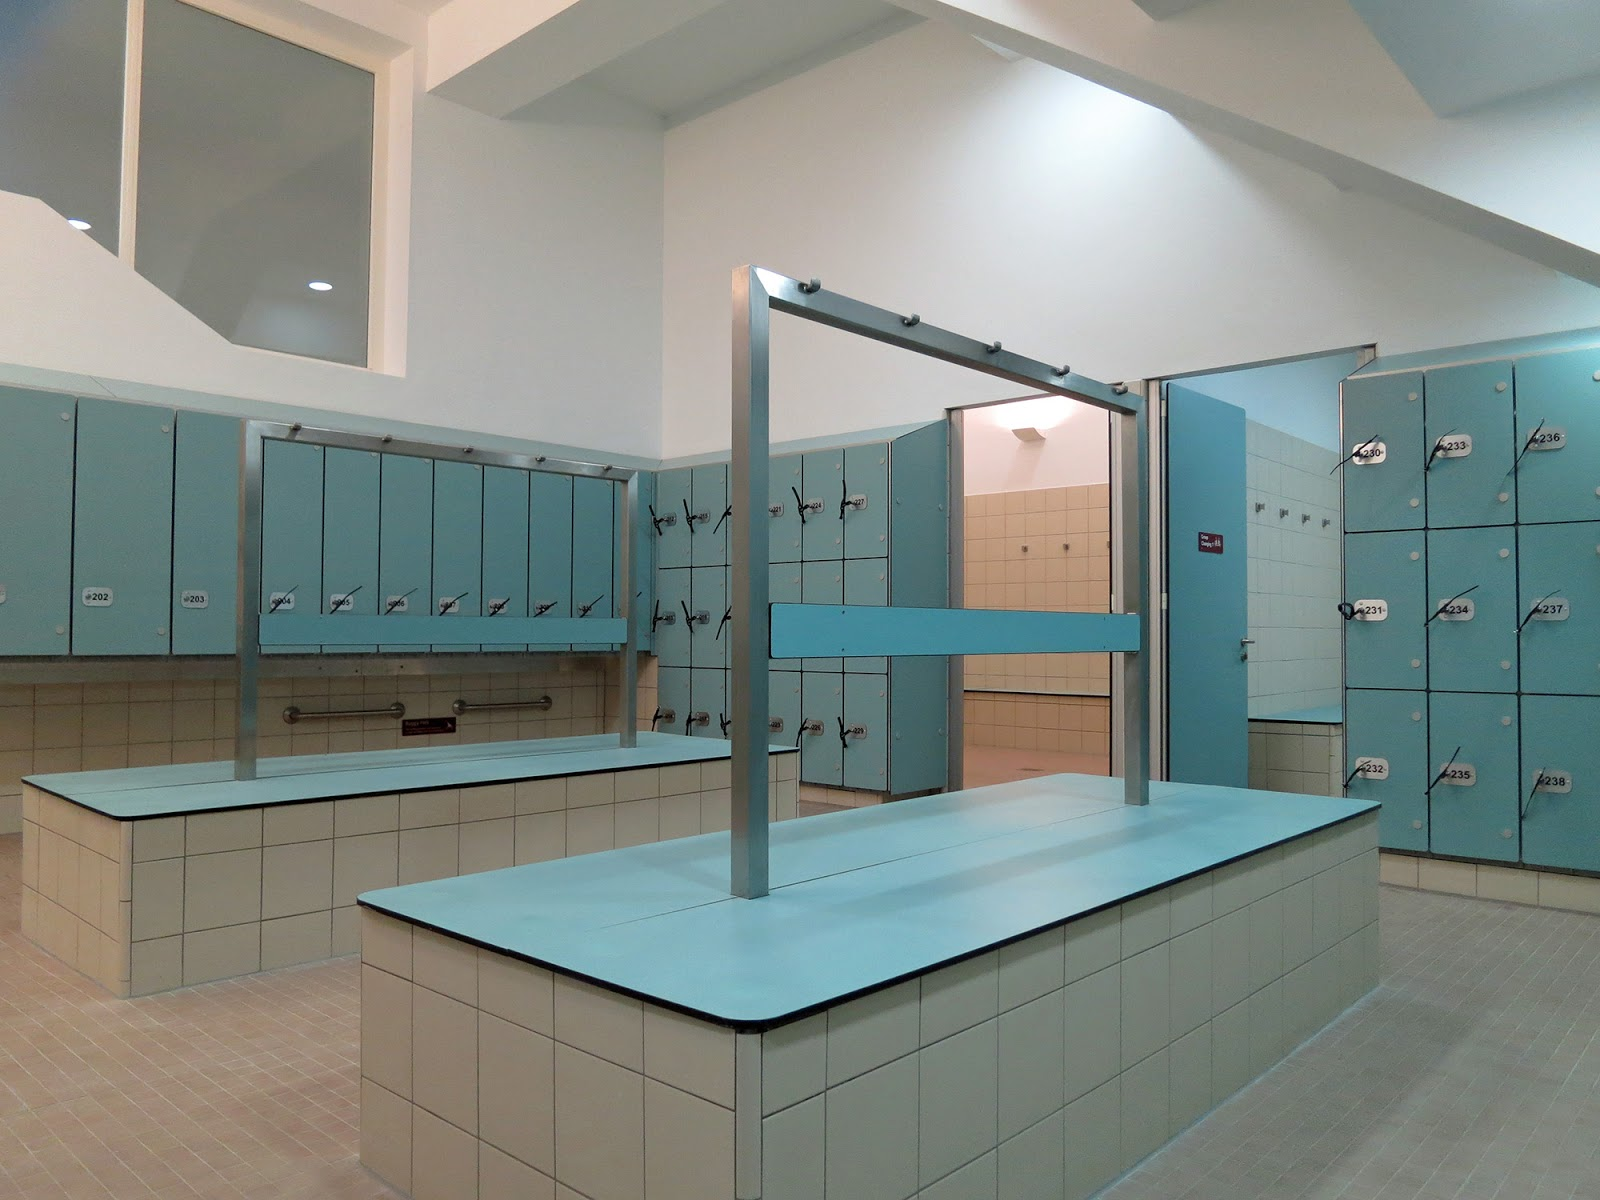 Ironmonger Row Baths The Grand Re Opening Clidive